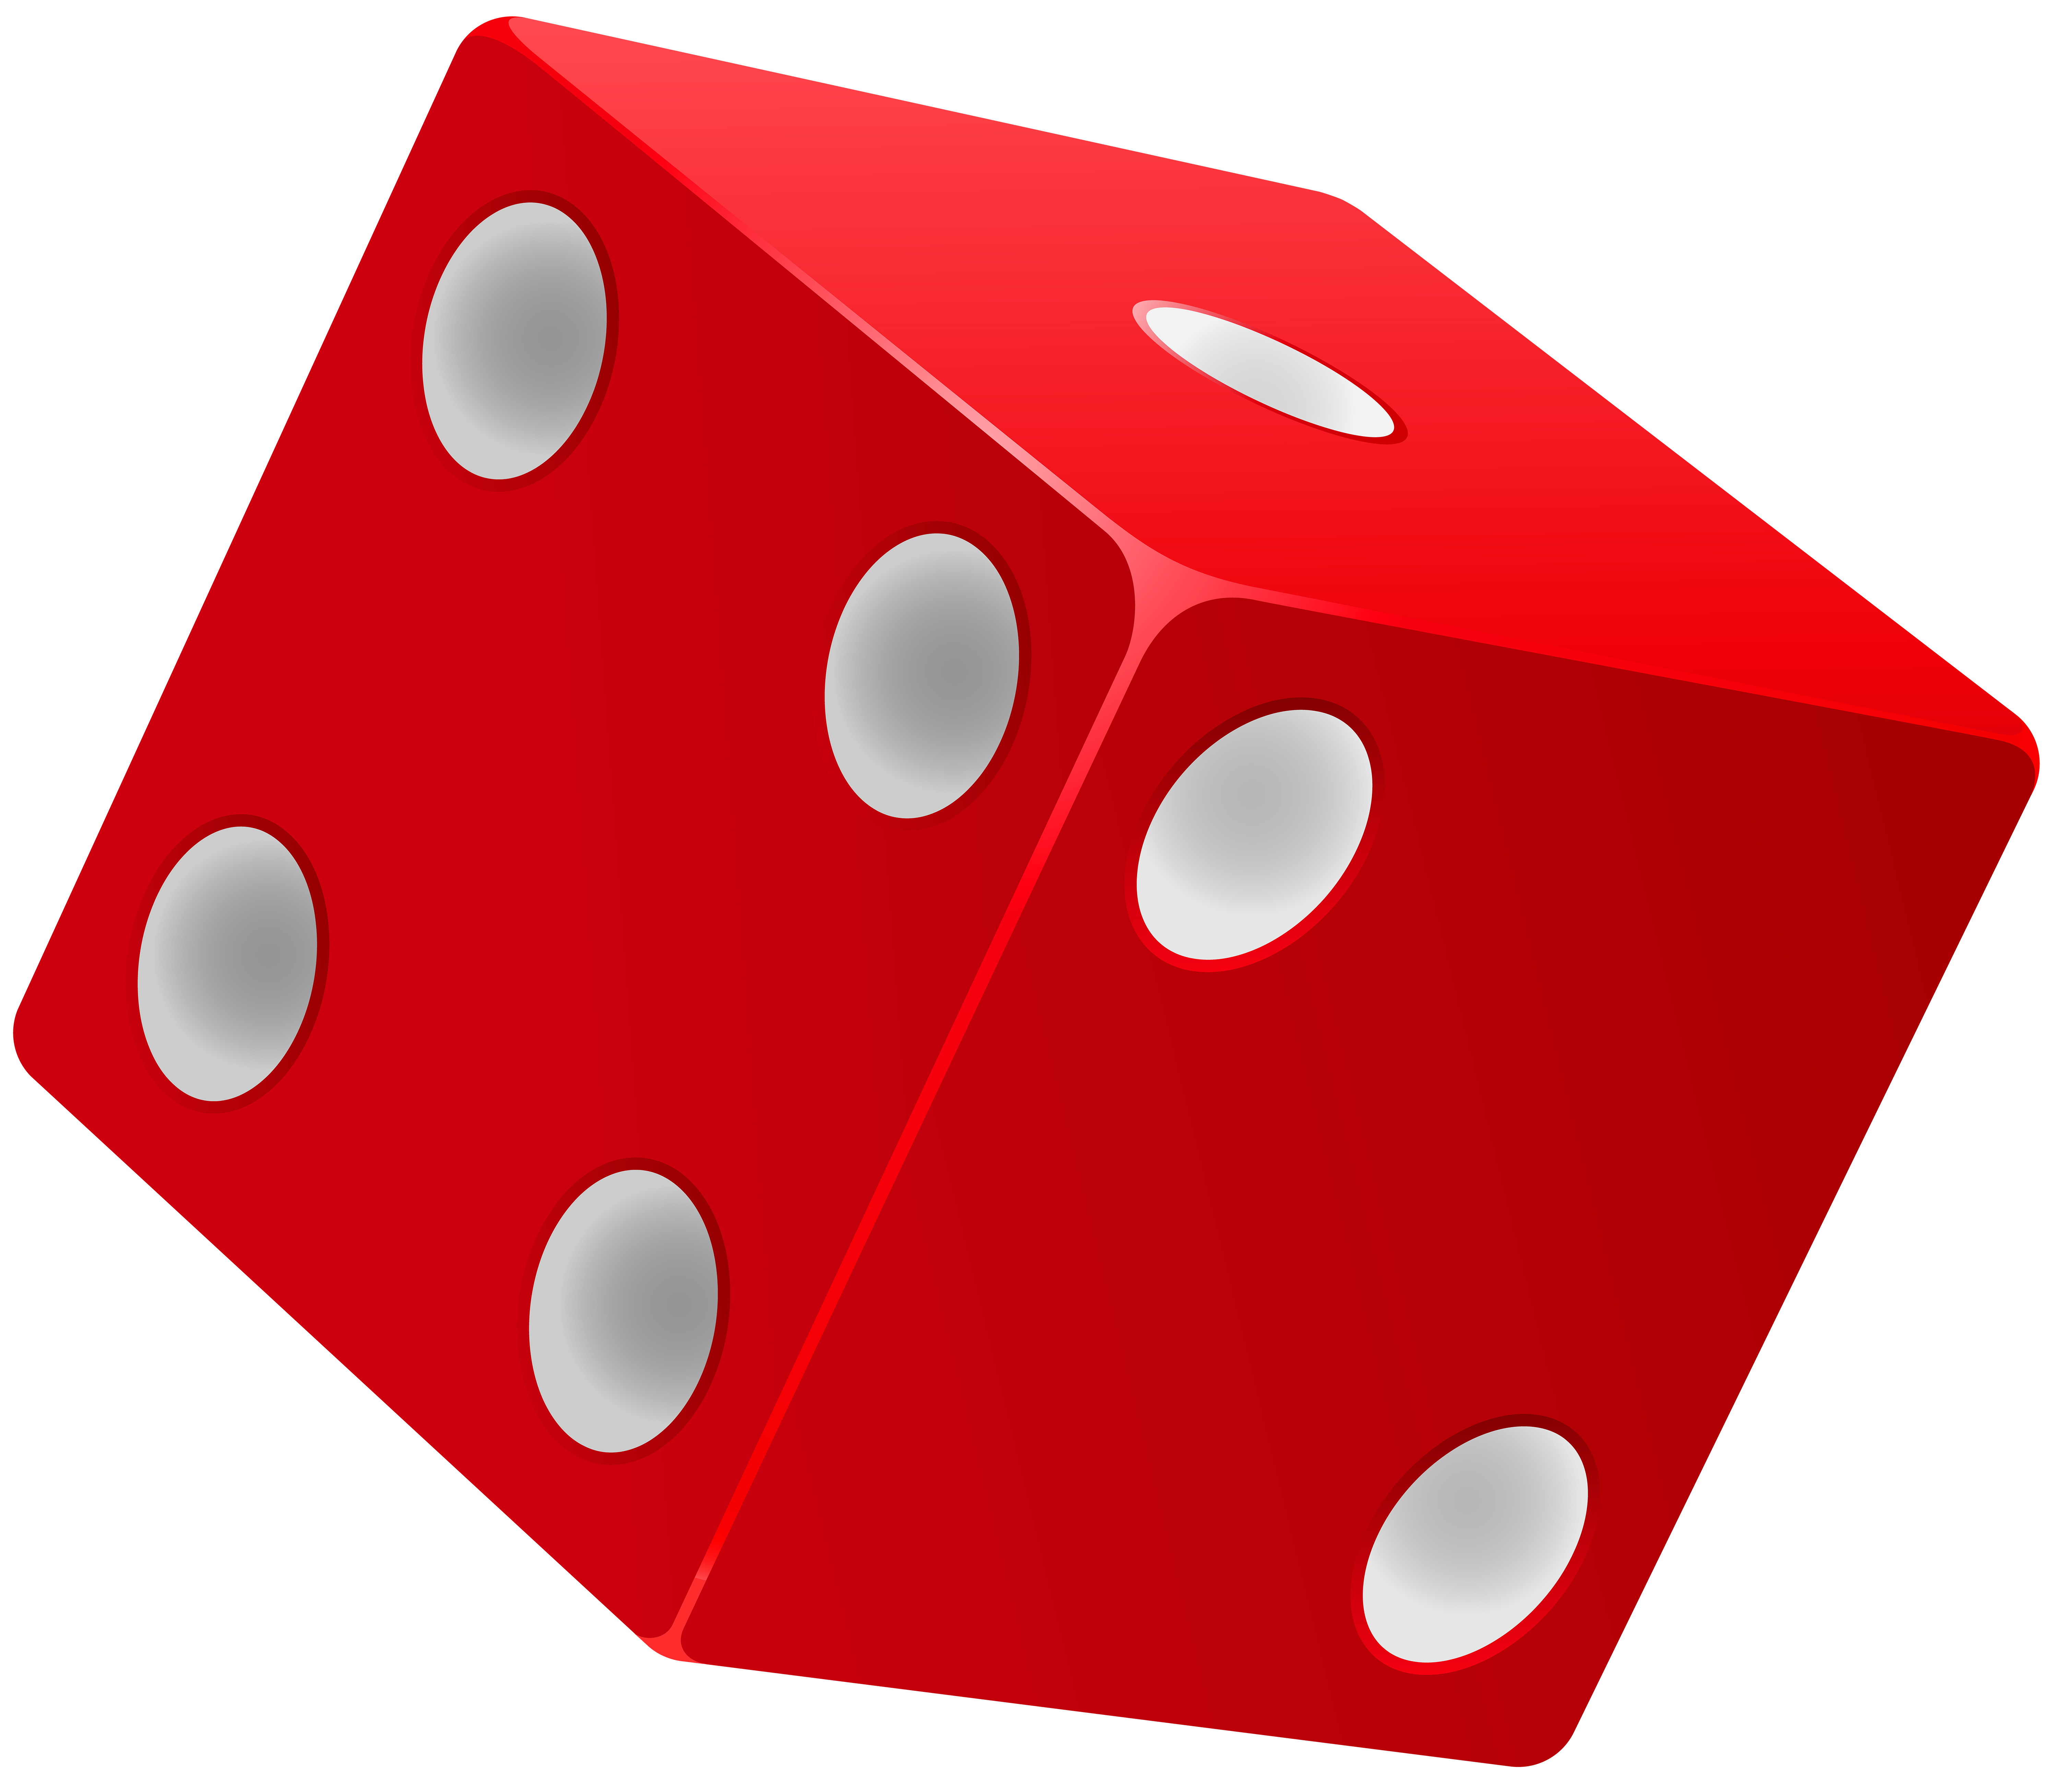 Dice Game Clip Art Dice 6000 5225 Transprent Png Free Download Inside Dice  Clipart